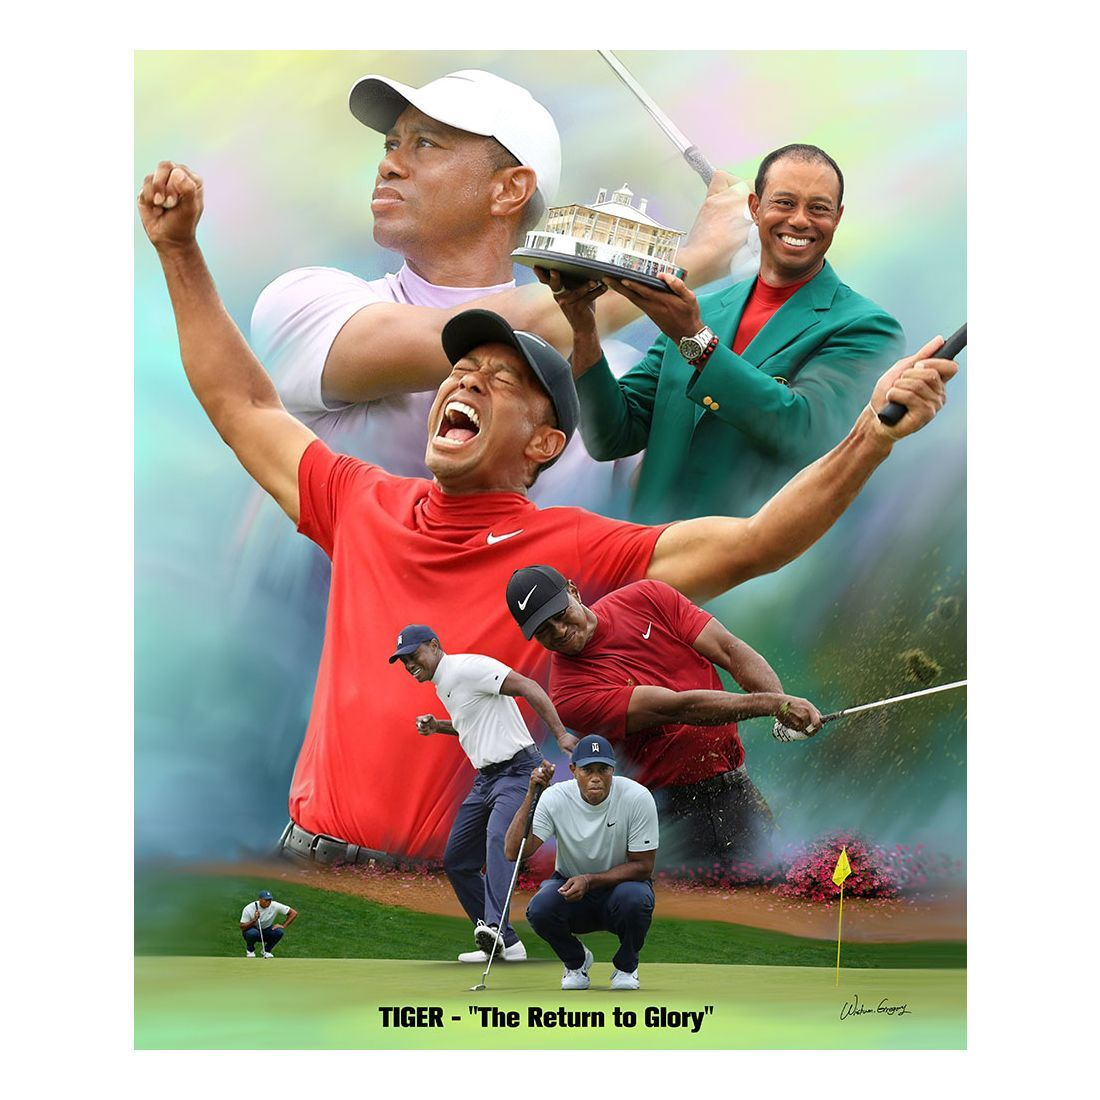 Tiger Woods: A Return to Glory by Wishum Gregory